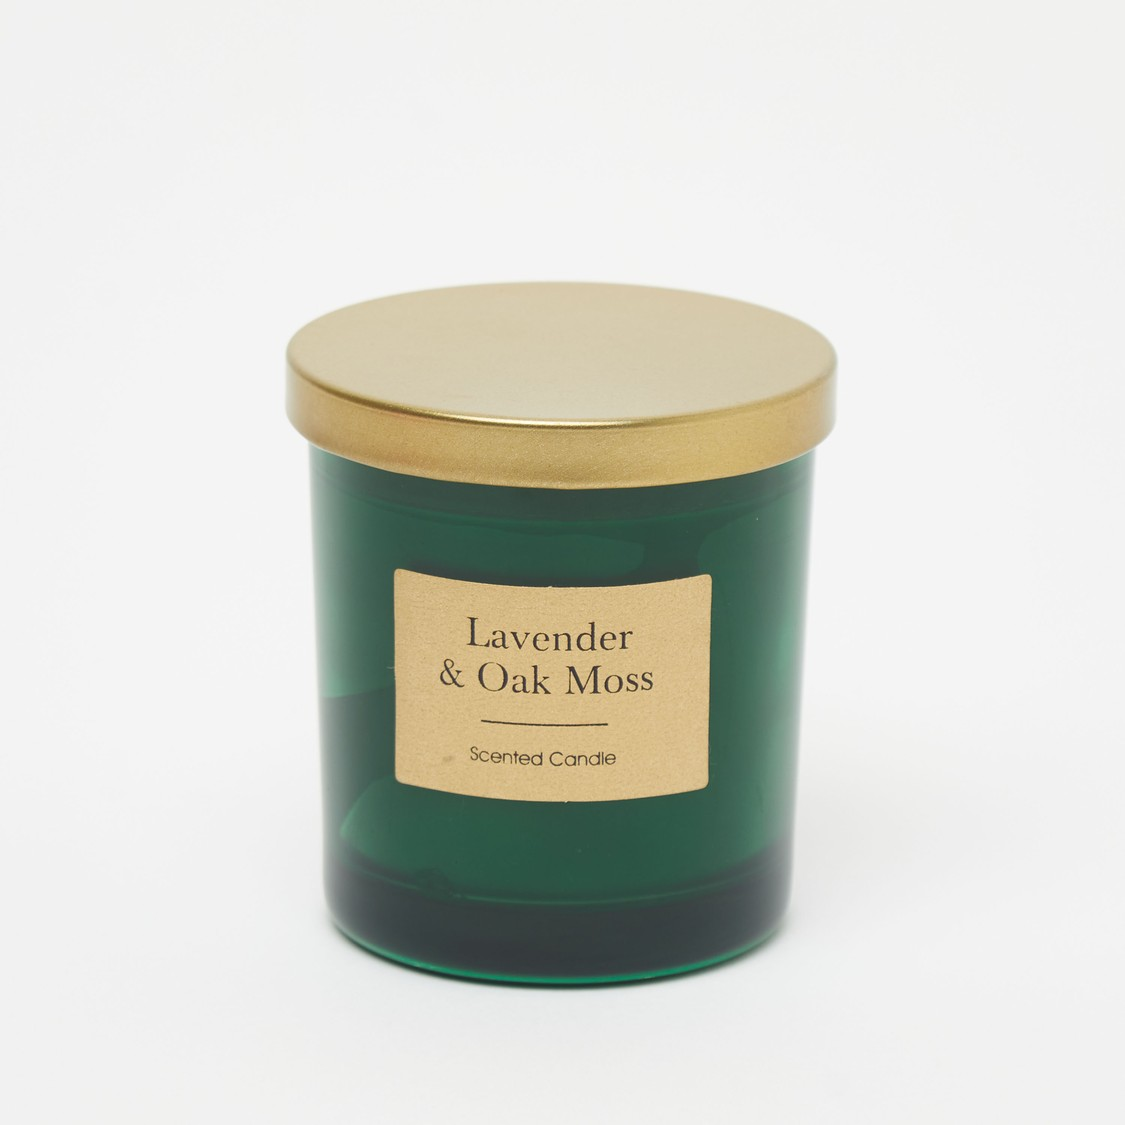 Lavender and Oak Moss Scented Jar Candle